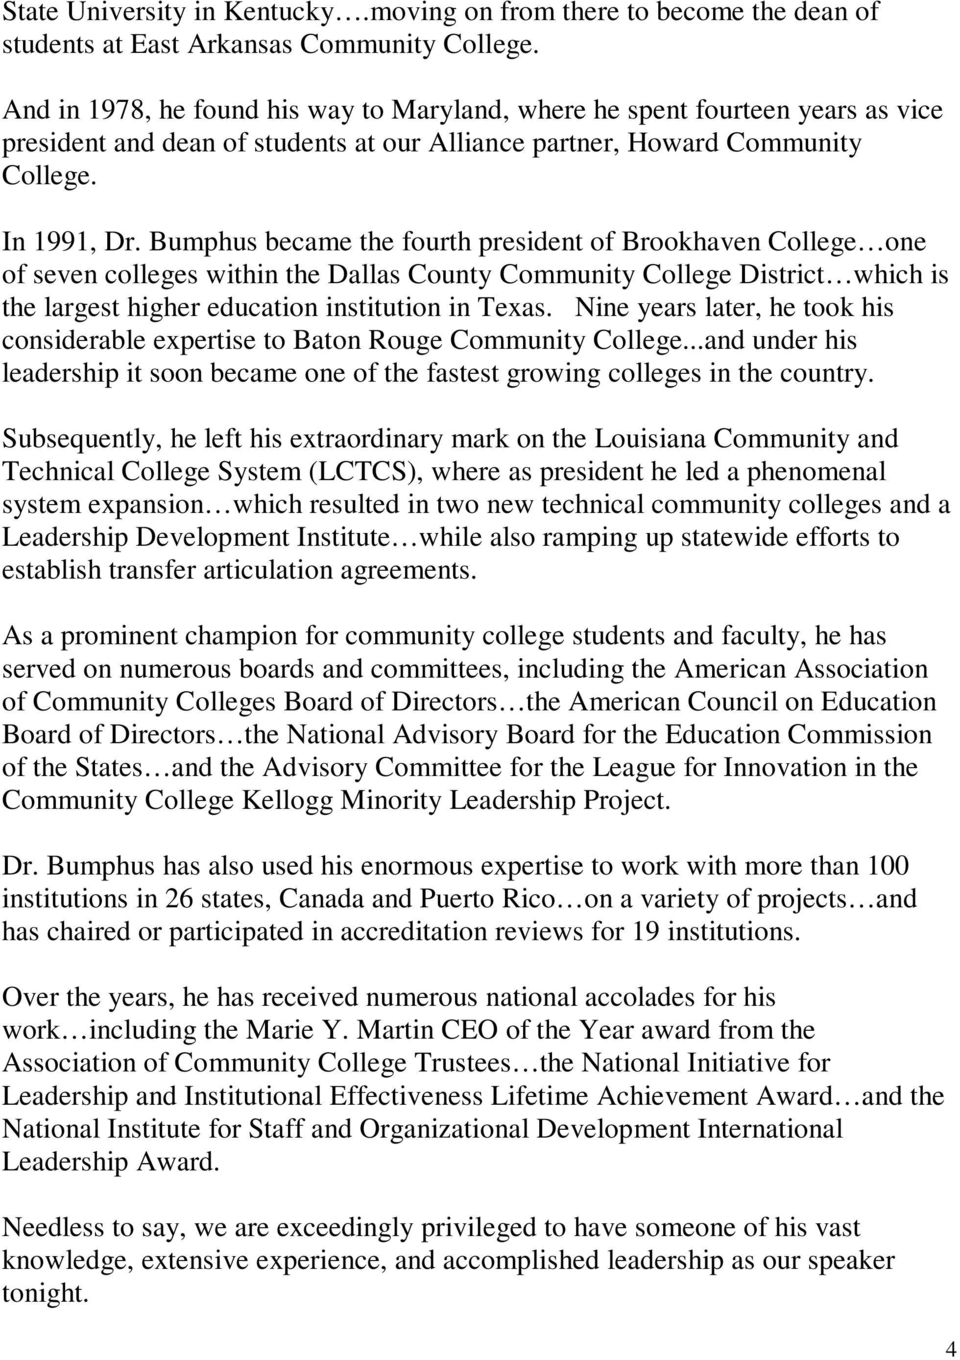 Bumphus became the fourth president of Brookhaven College one of seven colleges within the Dallas County Community College District which is the largest higher education institution in Texas.